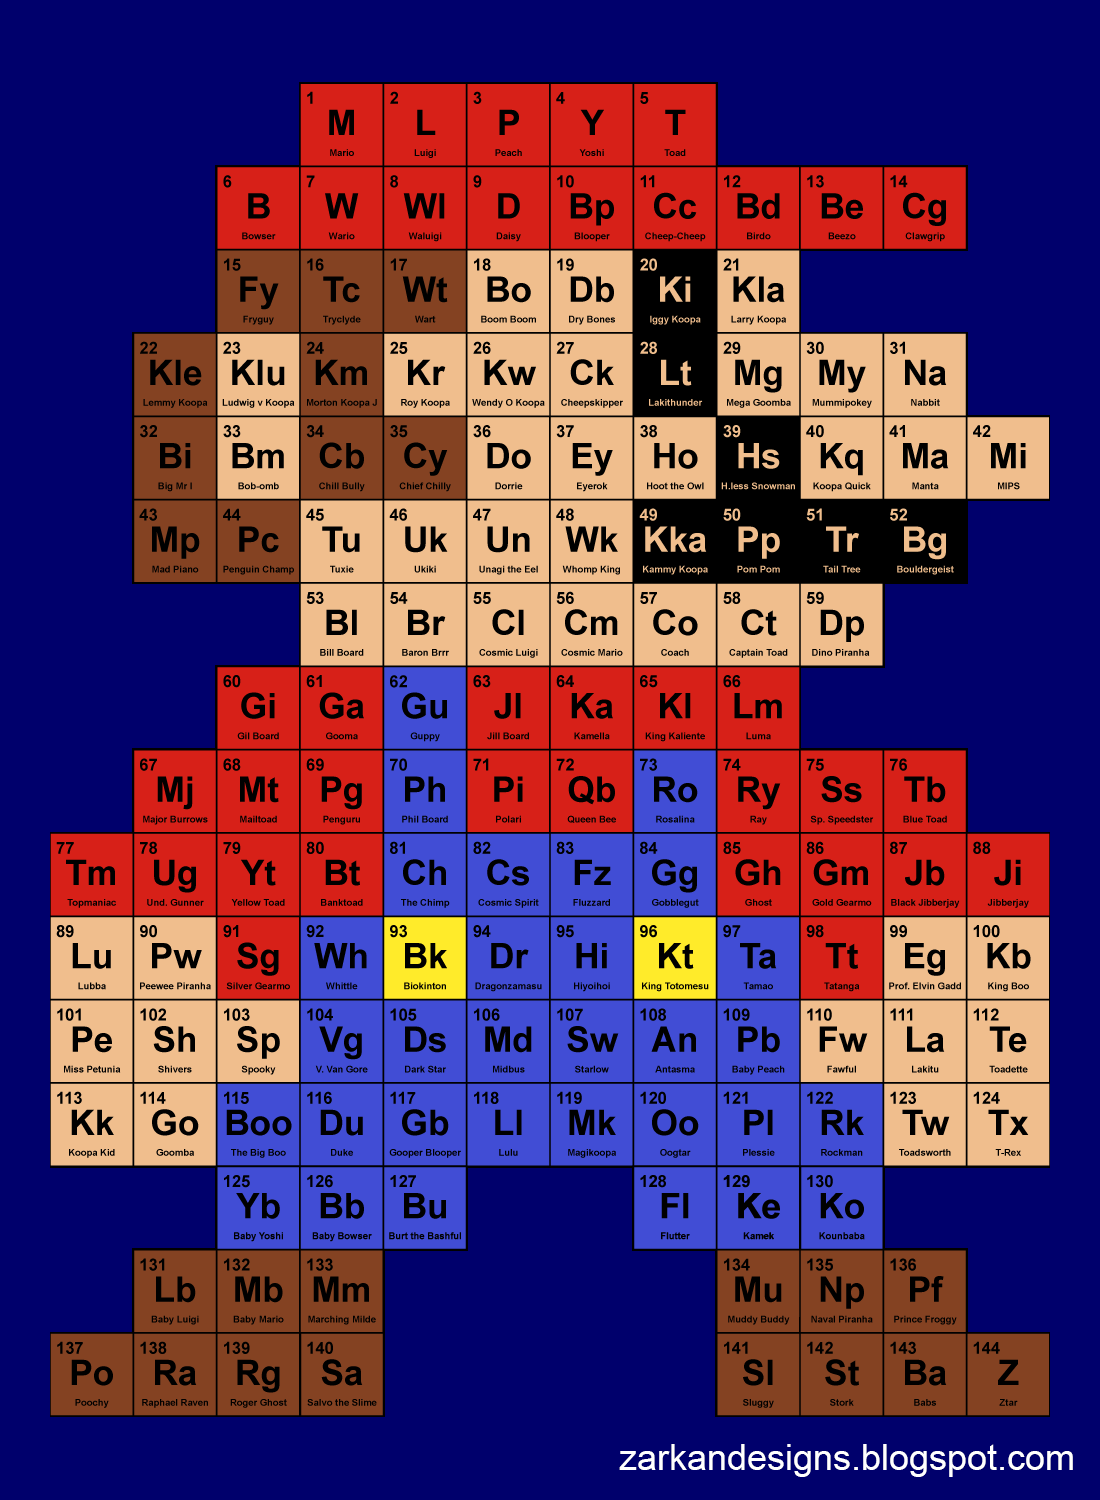 Periodic mario table a video games image dueling analogs periodic mario table urtaz Choice Image